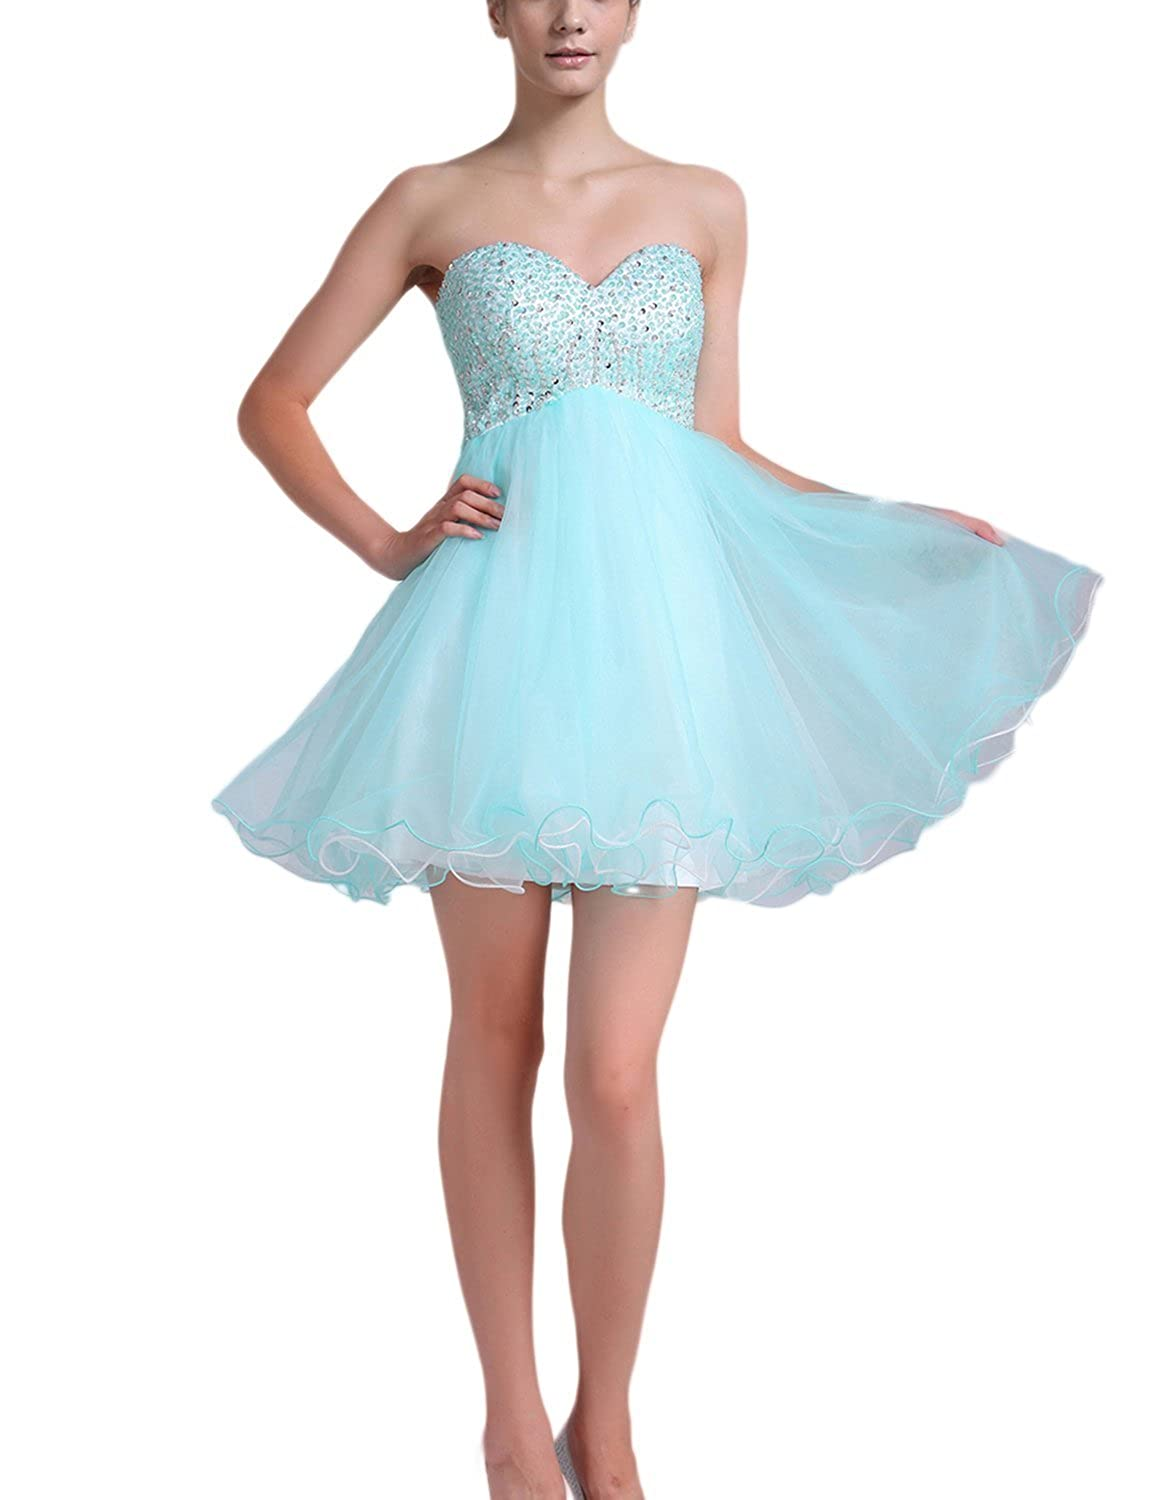 Fanciest Women's Beaded Short Homecoming Dresses 2016 Wedding Party Gowns Blue